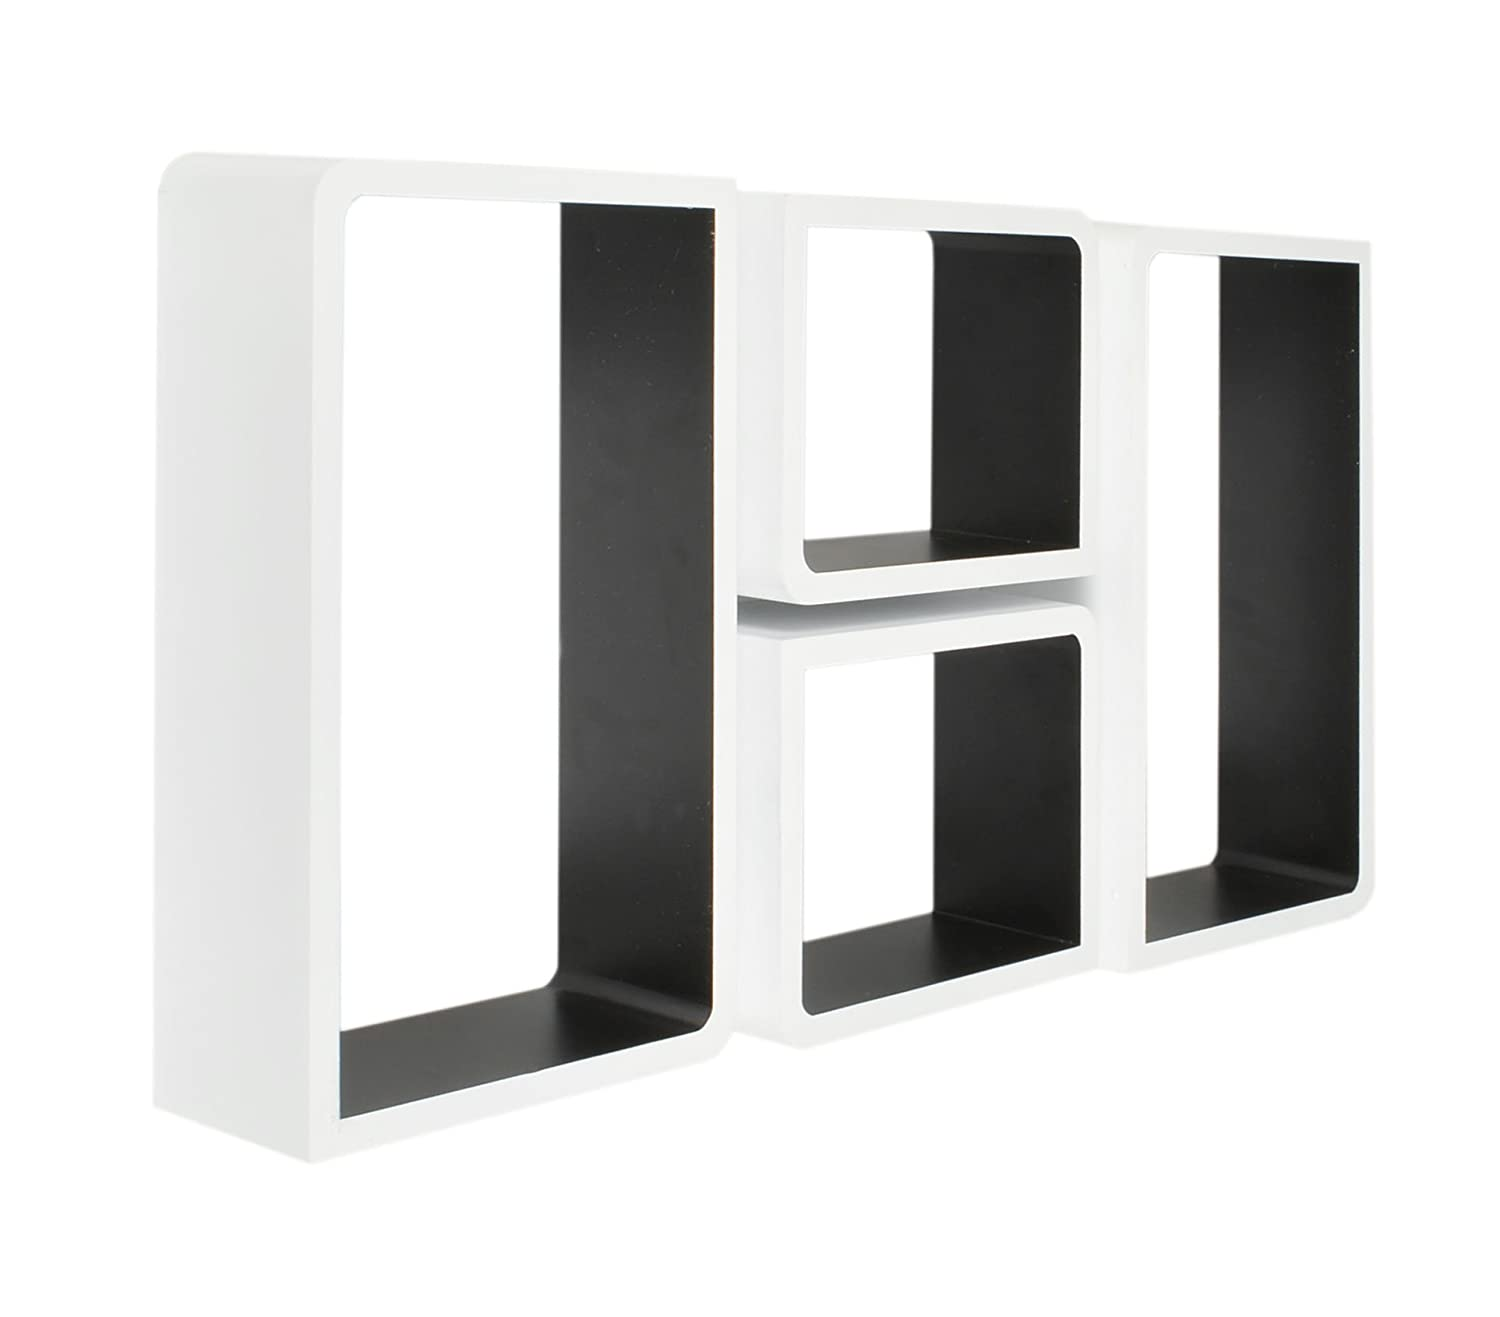 Set of 4 retro design lounge cube shelves white black retro set of 4 retro design lounge cube shelves white black retro designseventies wall mounted oblong 2 cubes with rounded and 2 cubes with rectangular amipublicfo Images